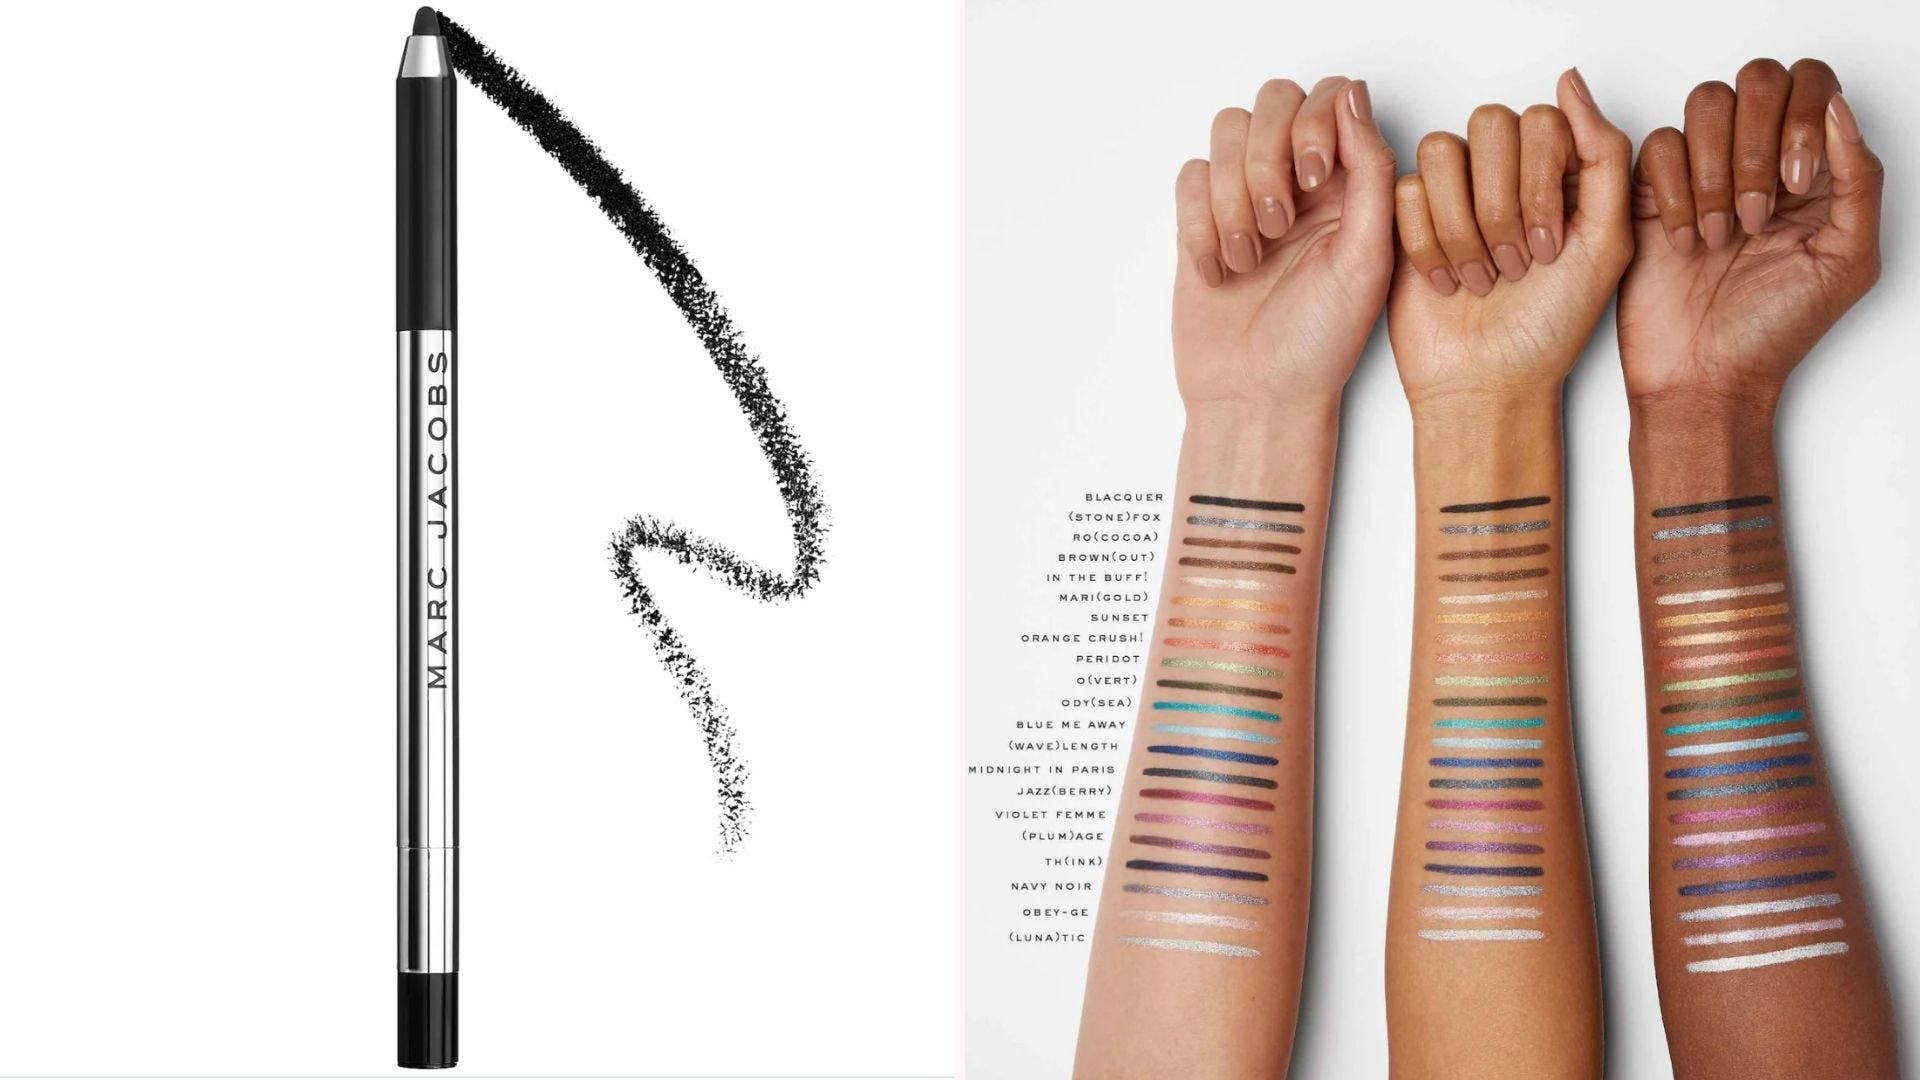 On the left, a black Marc Jacobs eye crayon on a white background, and on the right, three forearm swatches of eye crayons in many different colors.